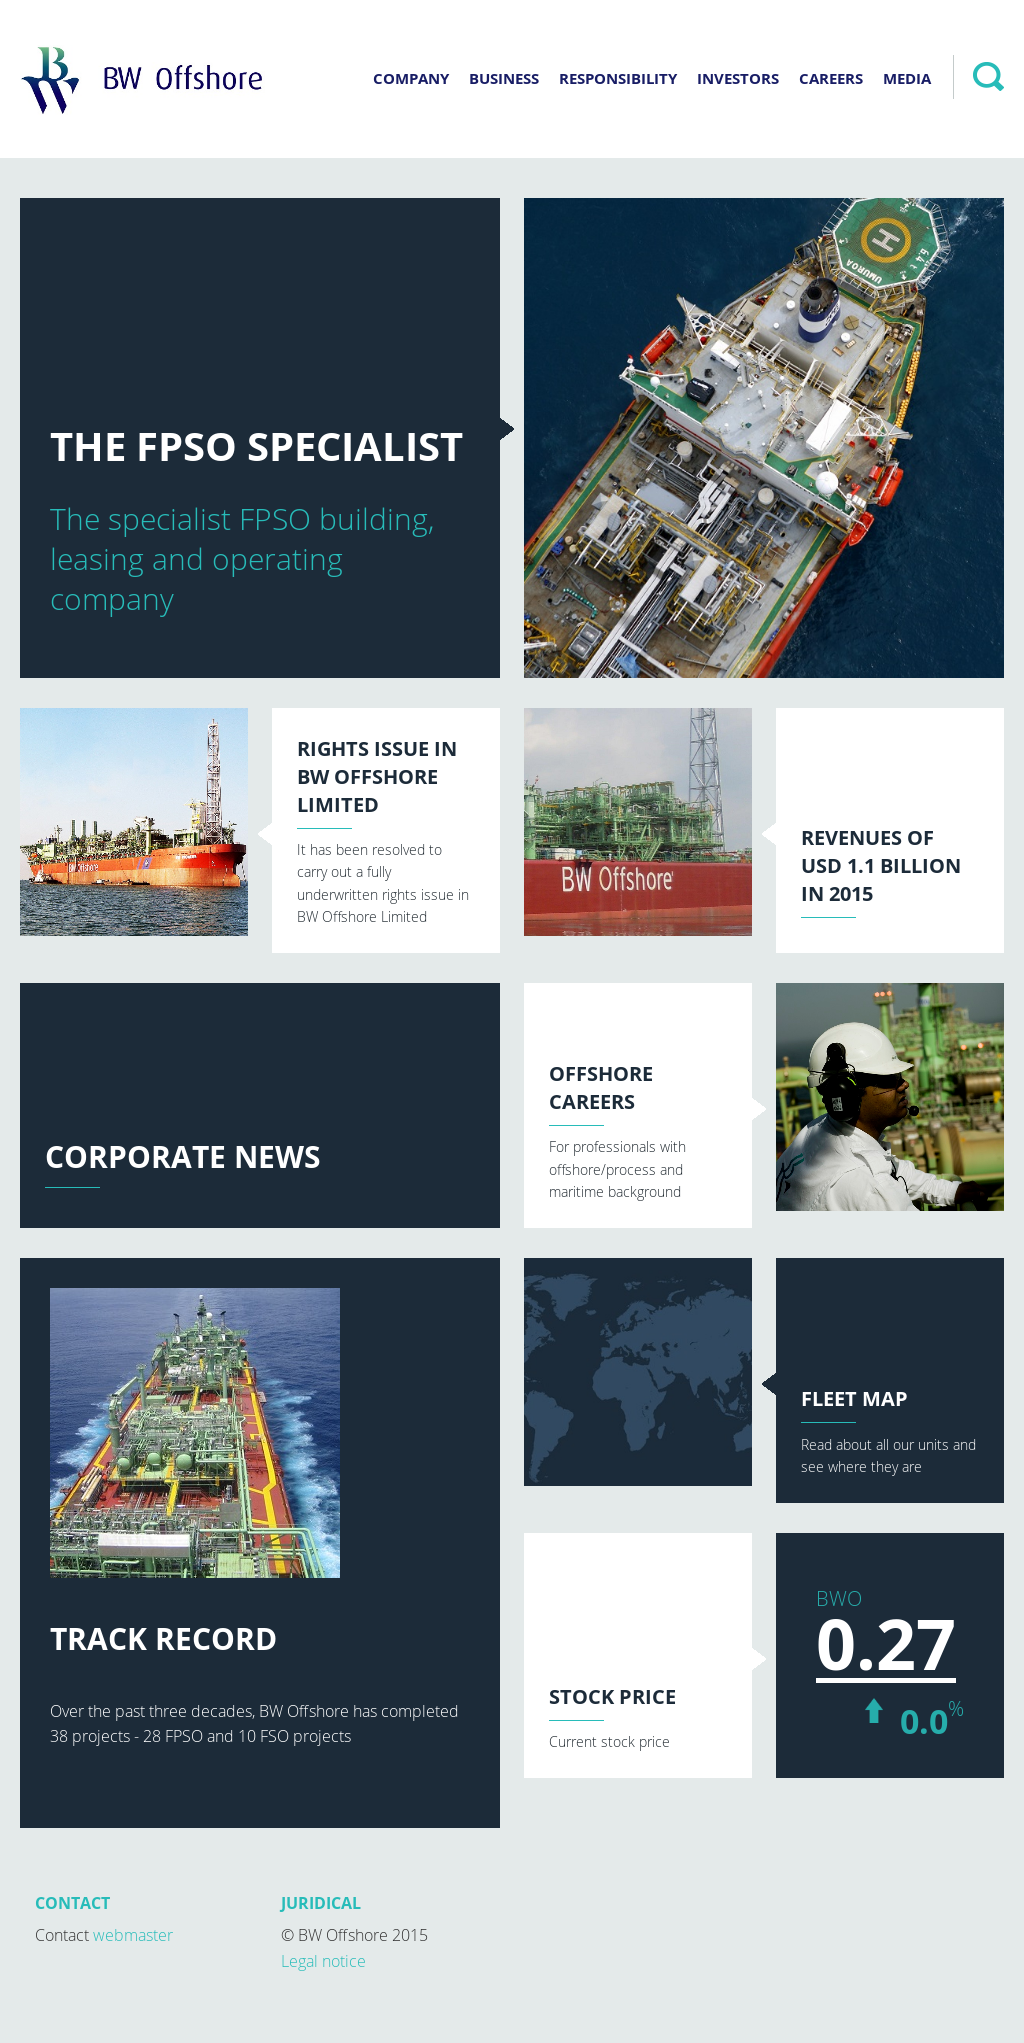 BW Offshore Competitors, Revenue and Employees - Owler Company Profile